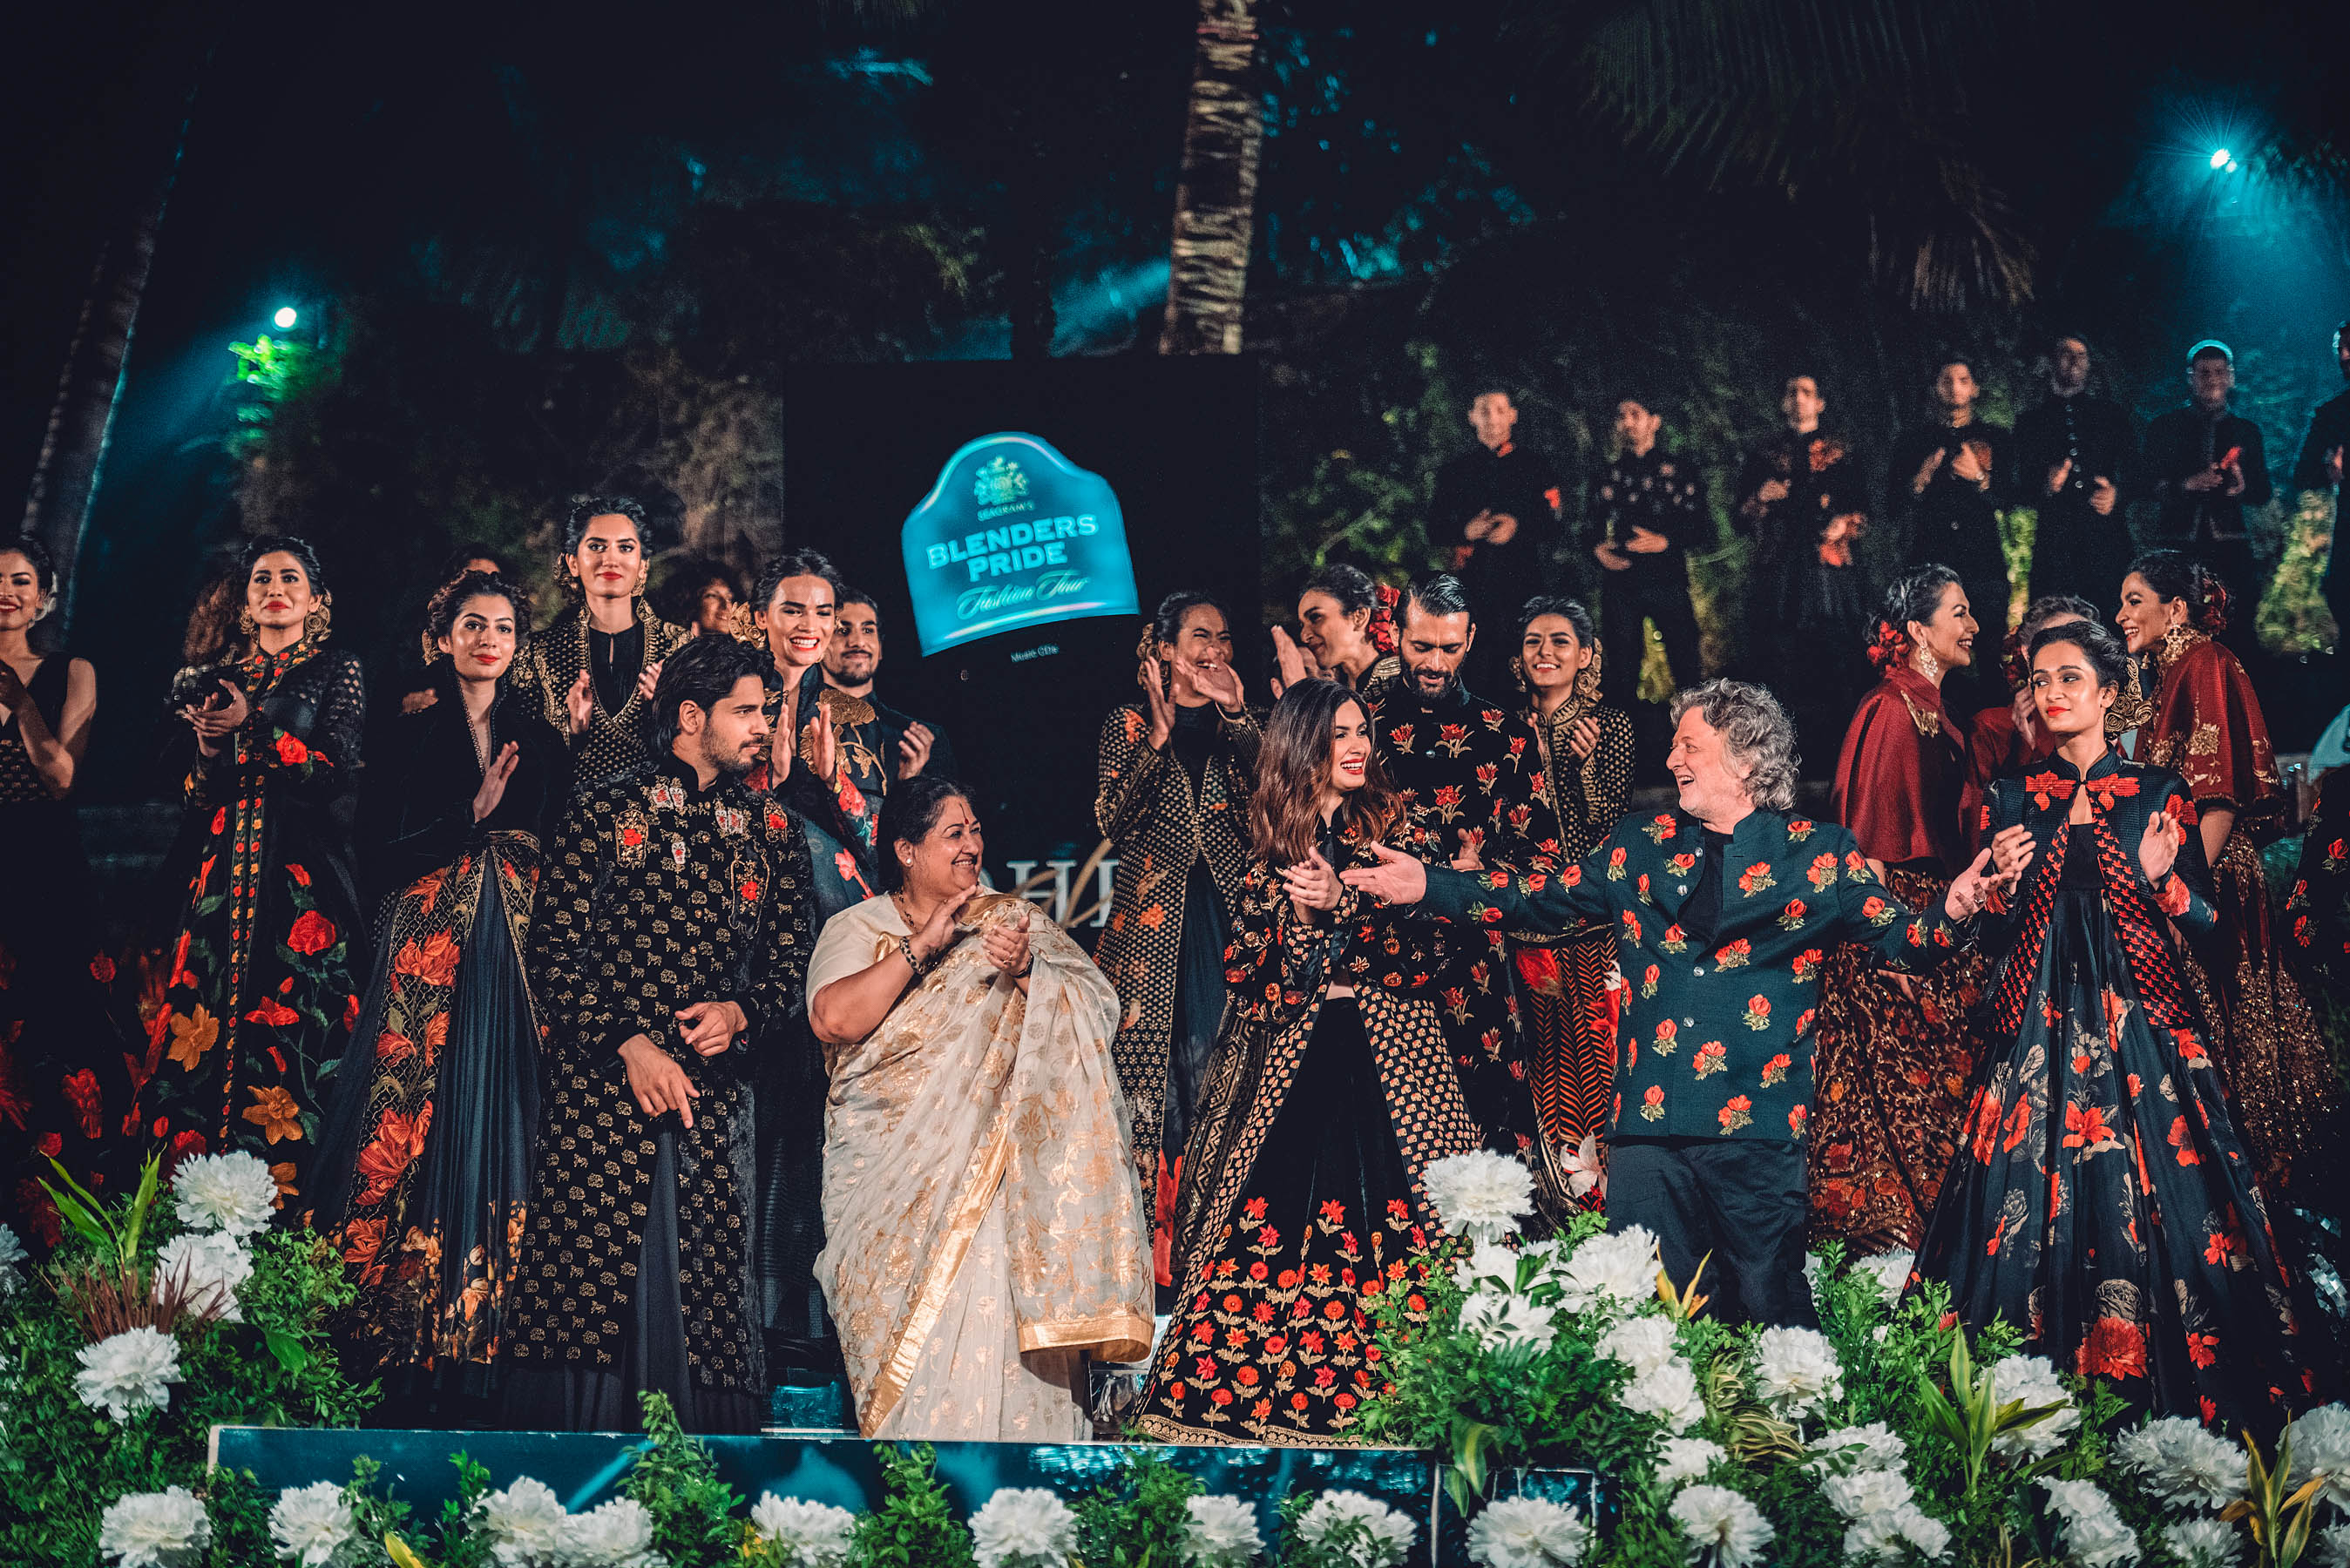 Naina.co, Blenders Pride Fashion Tour, Rohit Bal, Guldasta, Kashmir, Pernod Ricard, Naina Redhu, MadeInIndia, EyesForFashion, Blenders Pride, BPFT2018, BPFT, NAINAxBPFT, MyStyleMyPride, MyHeritageMyPride, Taj Lands End, Bandra Fort, Heritage Building, Bandra, Bombay, Mumbai, Diana Penty, Siddharth Malhotra, Preferred Professionals, Whiskey, Fashion Tour, Fashion Party, Shubha Mudgal, Indian Classical Music, Flowers, Diva Dhawan, Indian Models, Roses, Flower Motifs, Fashion Show, Gudda, Sealink